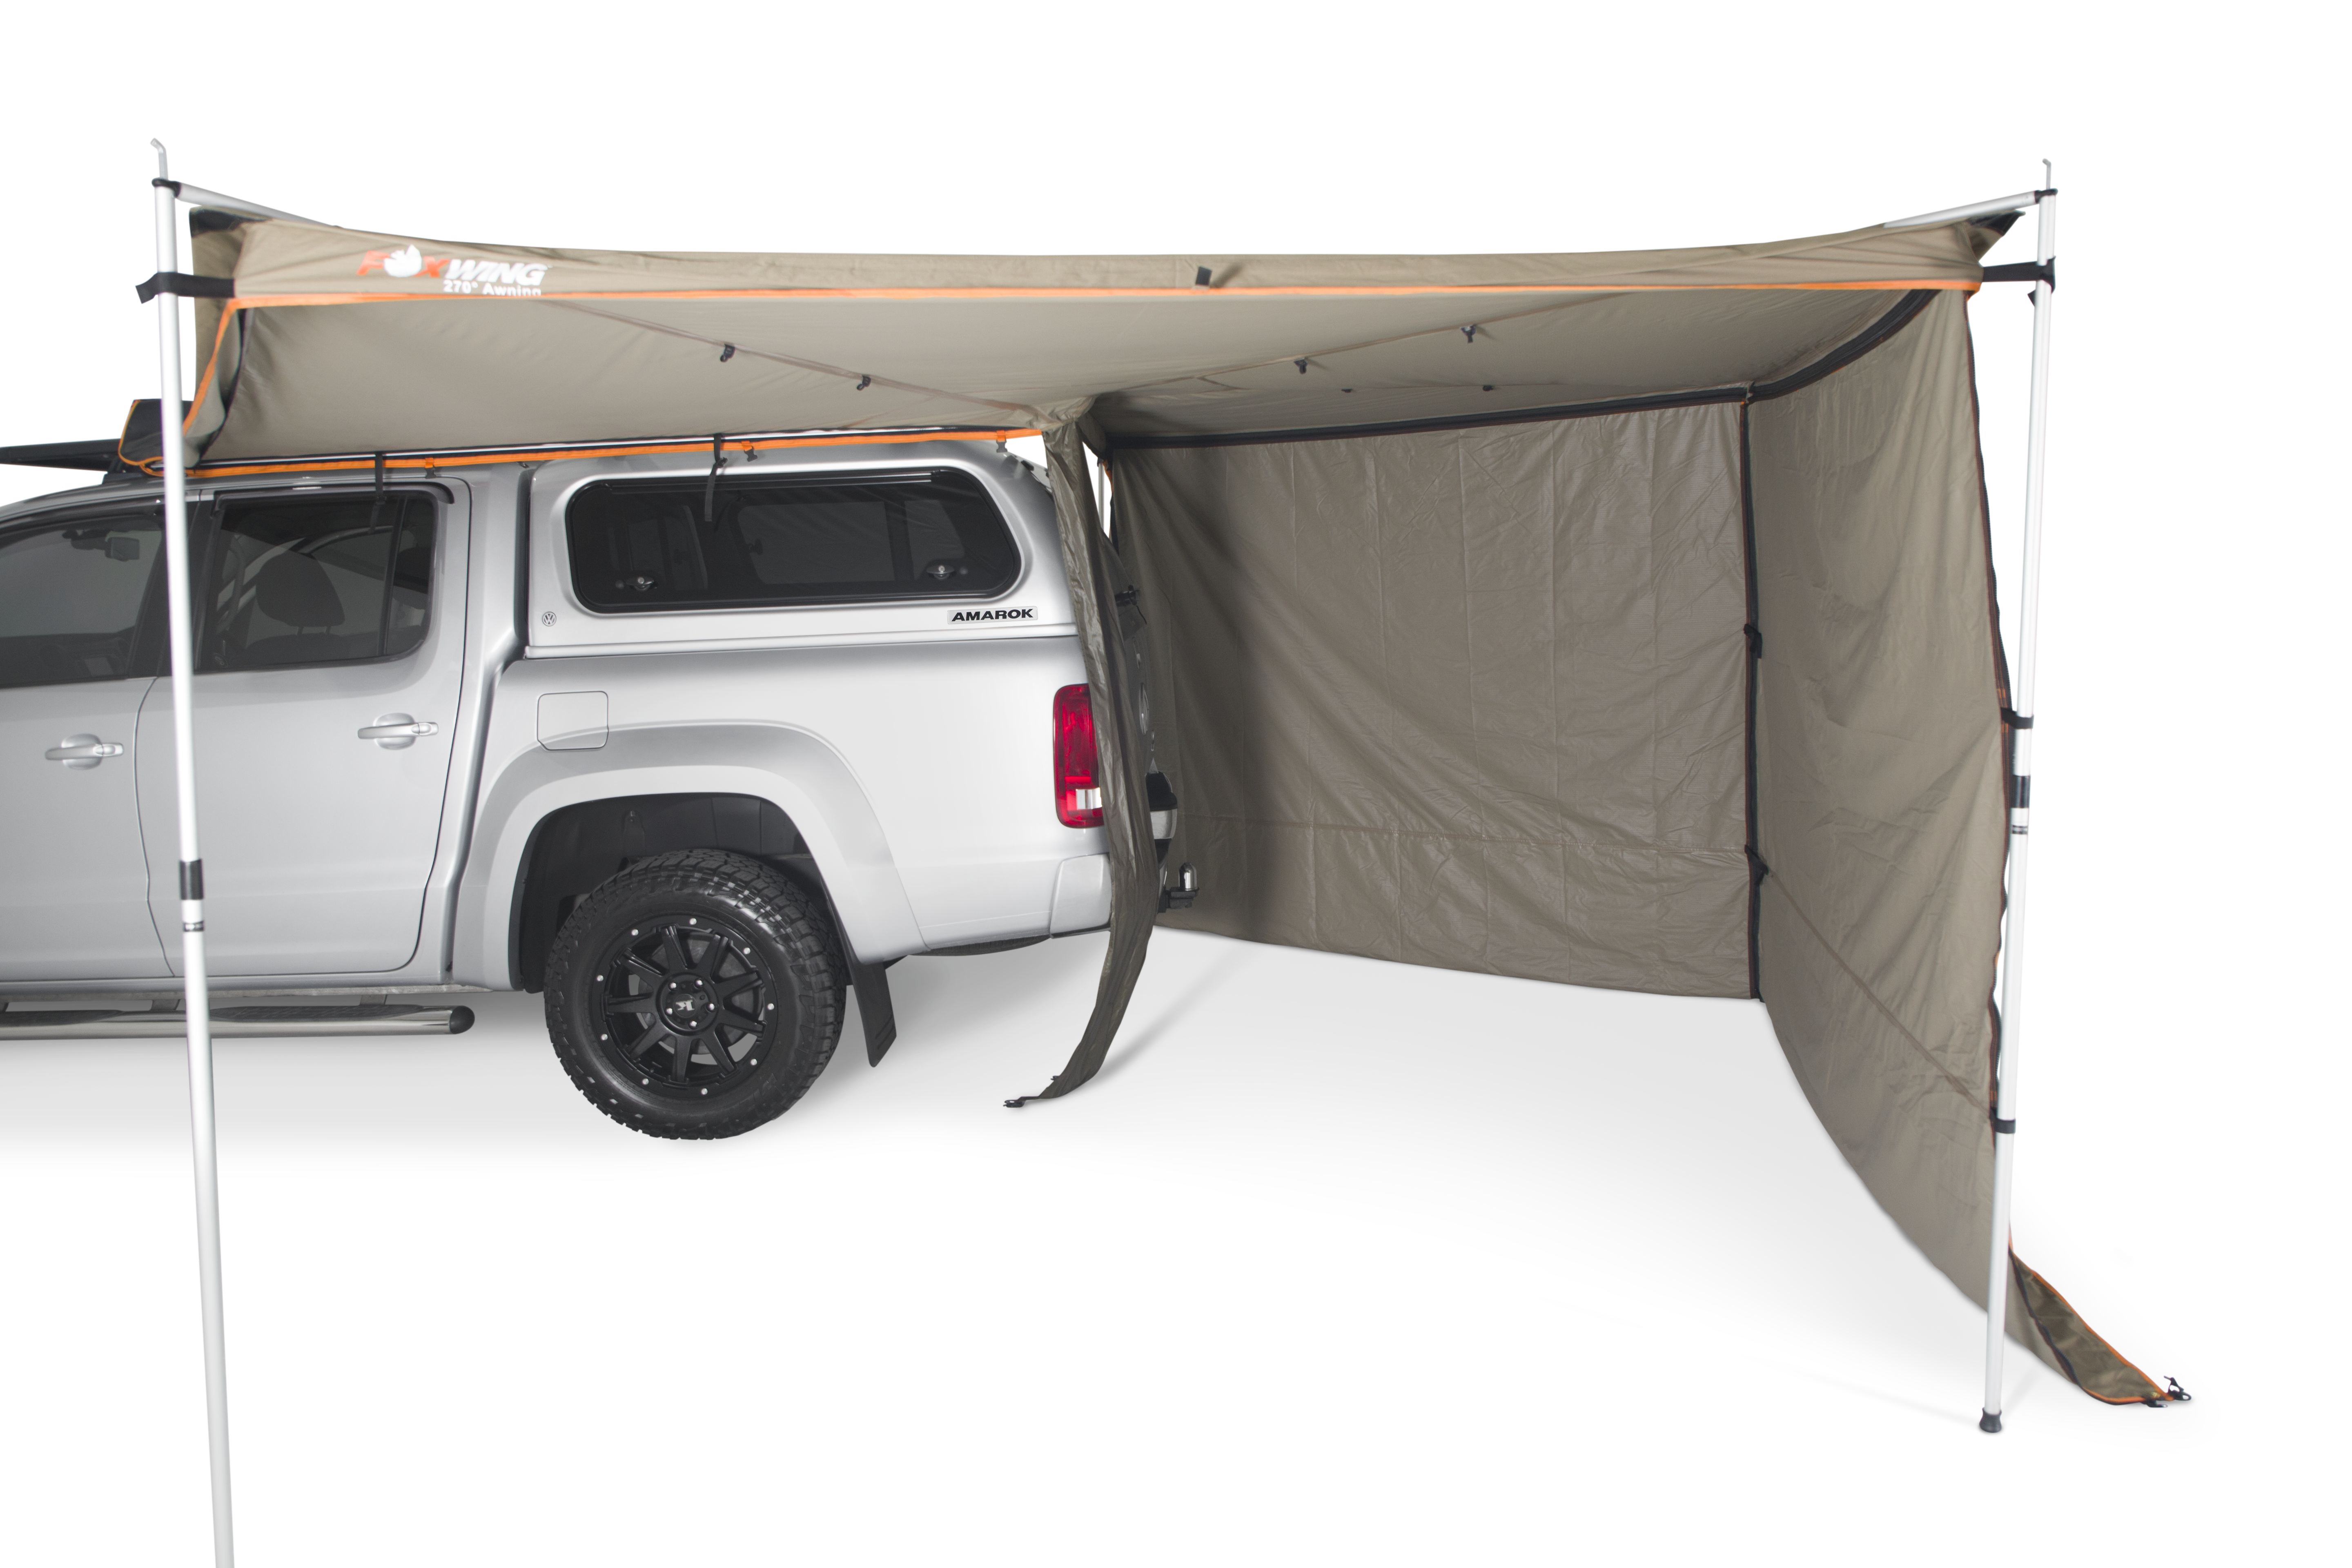 OZTENT | FOXWING - 270 Awning Extension [RRP $249]